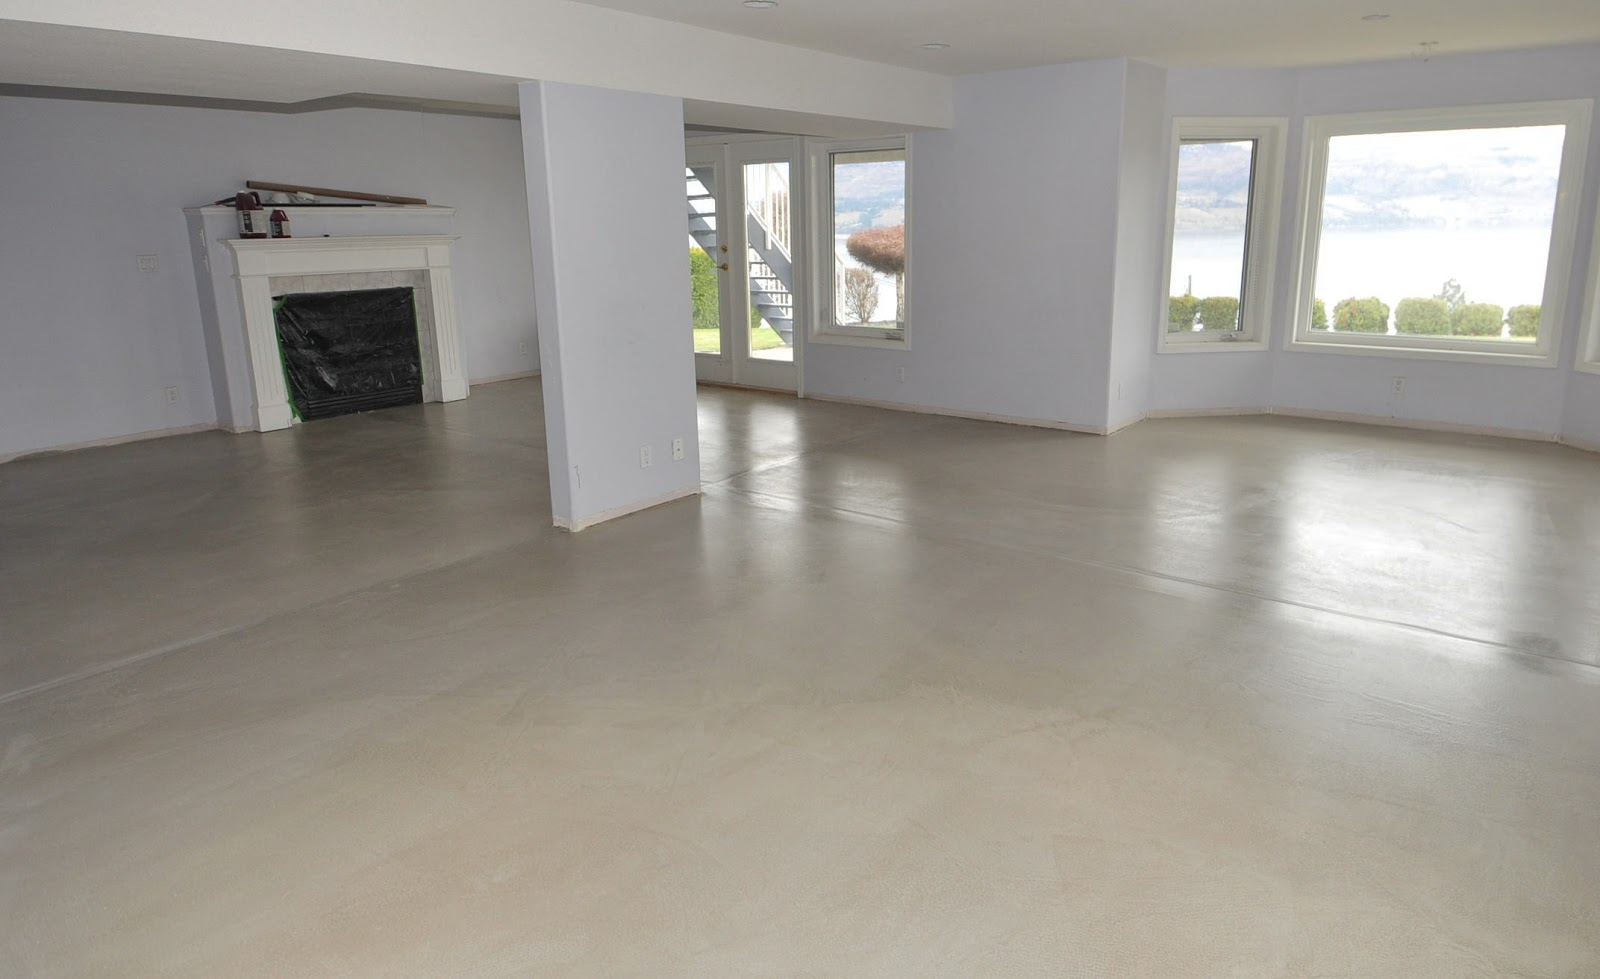 Mode concrete cool and modern concrete floors for How to clean cement floors in house